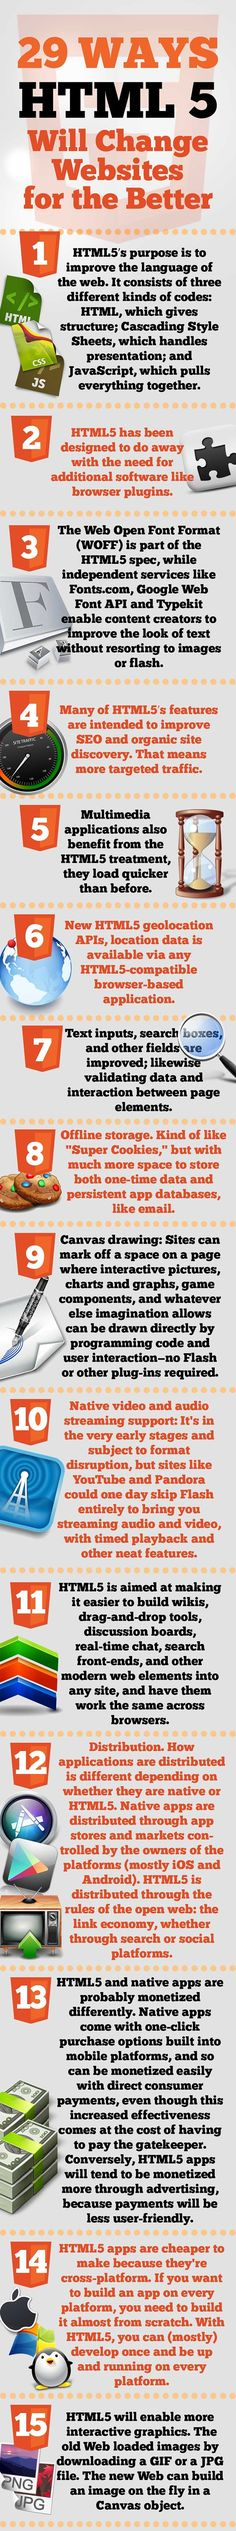 29 Ways HTML 5 Will Change Website for the Better - Infographic